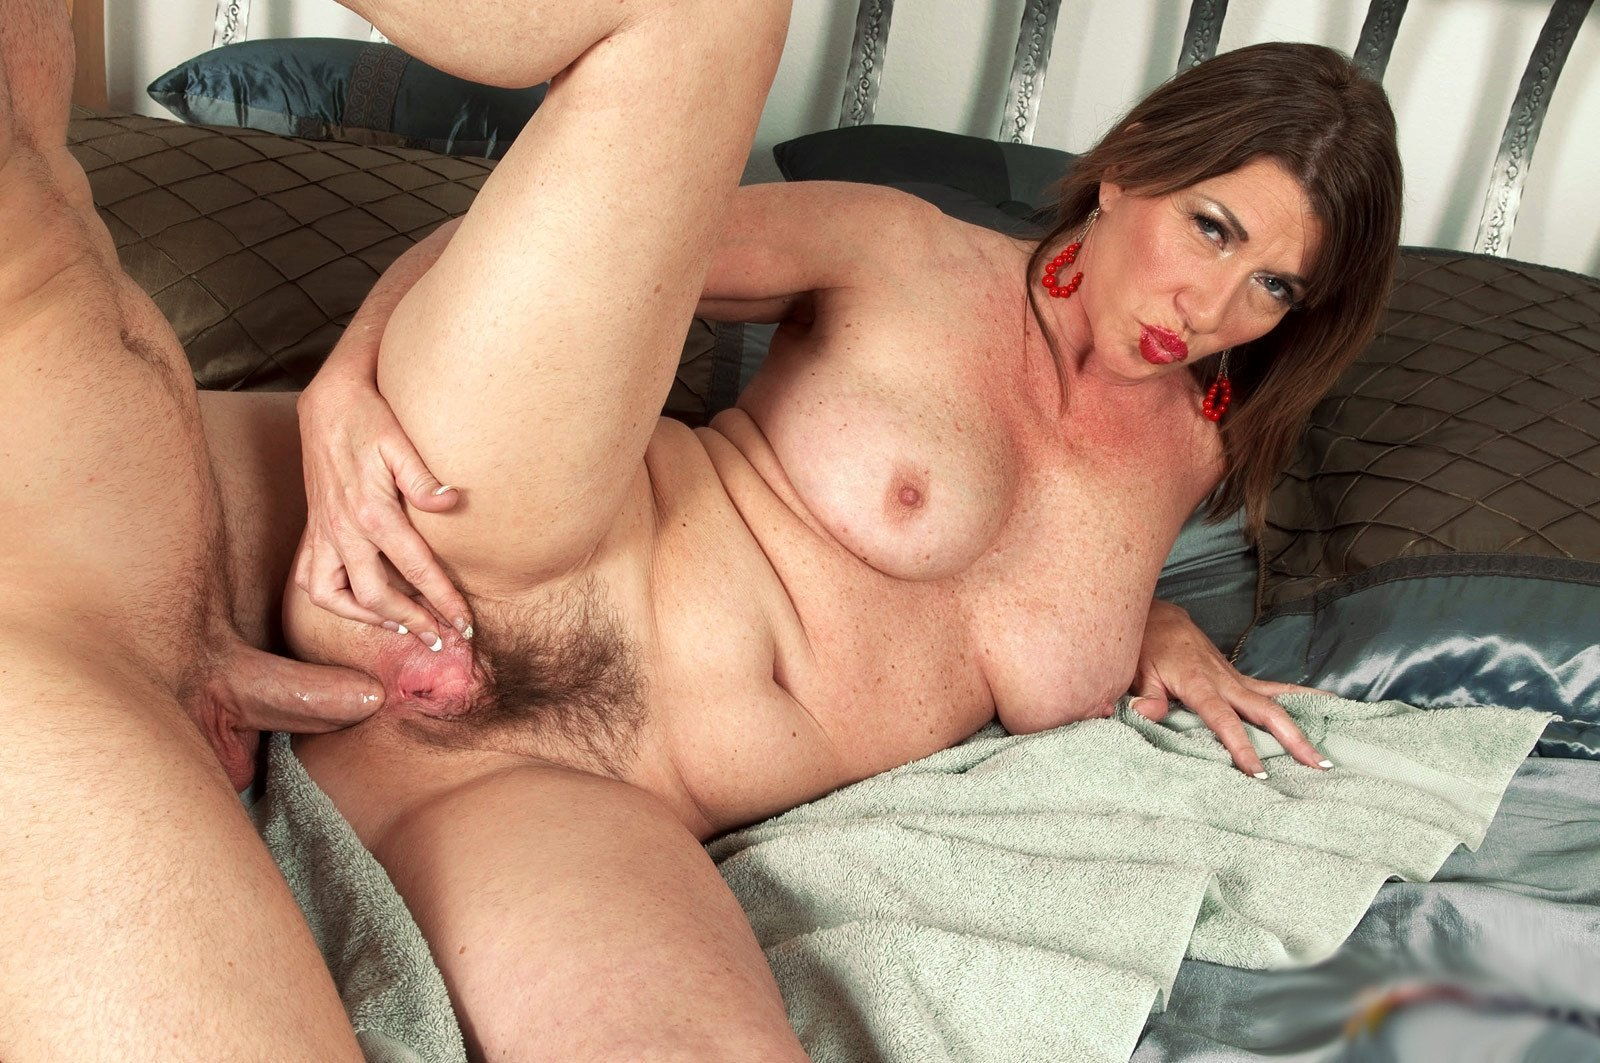 Free videos of old hairy women fucking